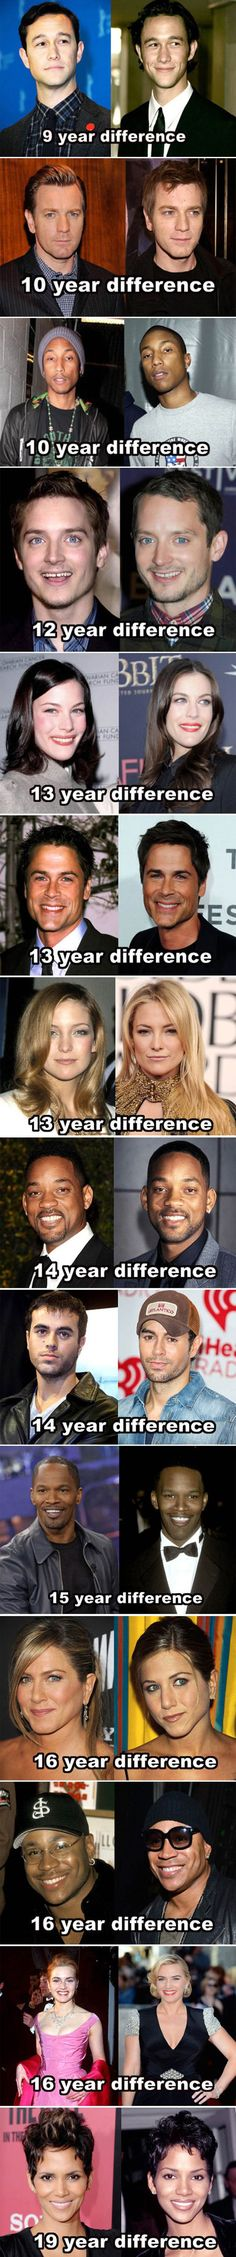 That makes sense- celebrities are vampires who don't age.